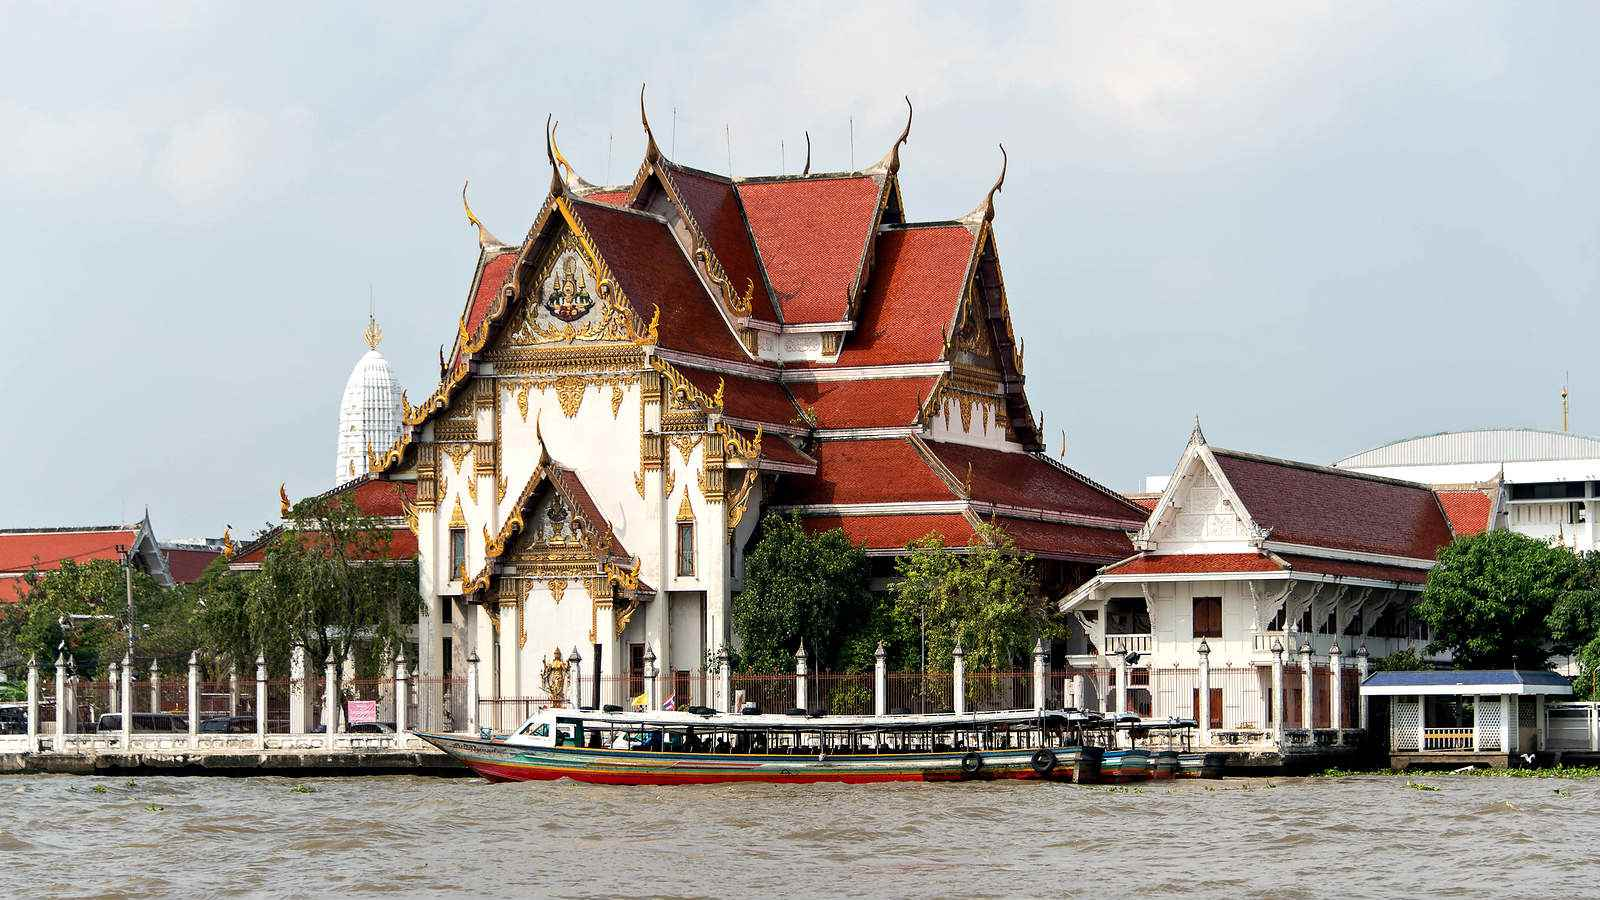 Temple at the banks of the Chao Phraya River